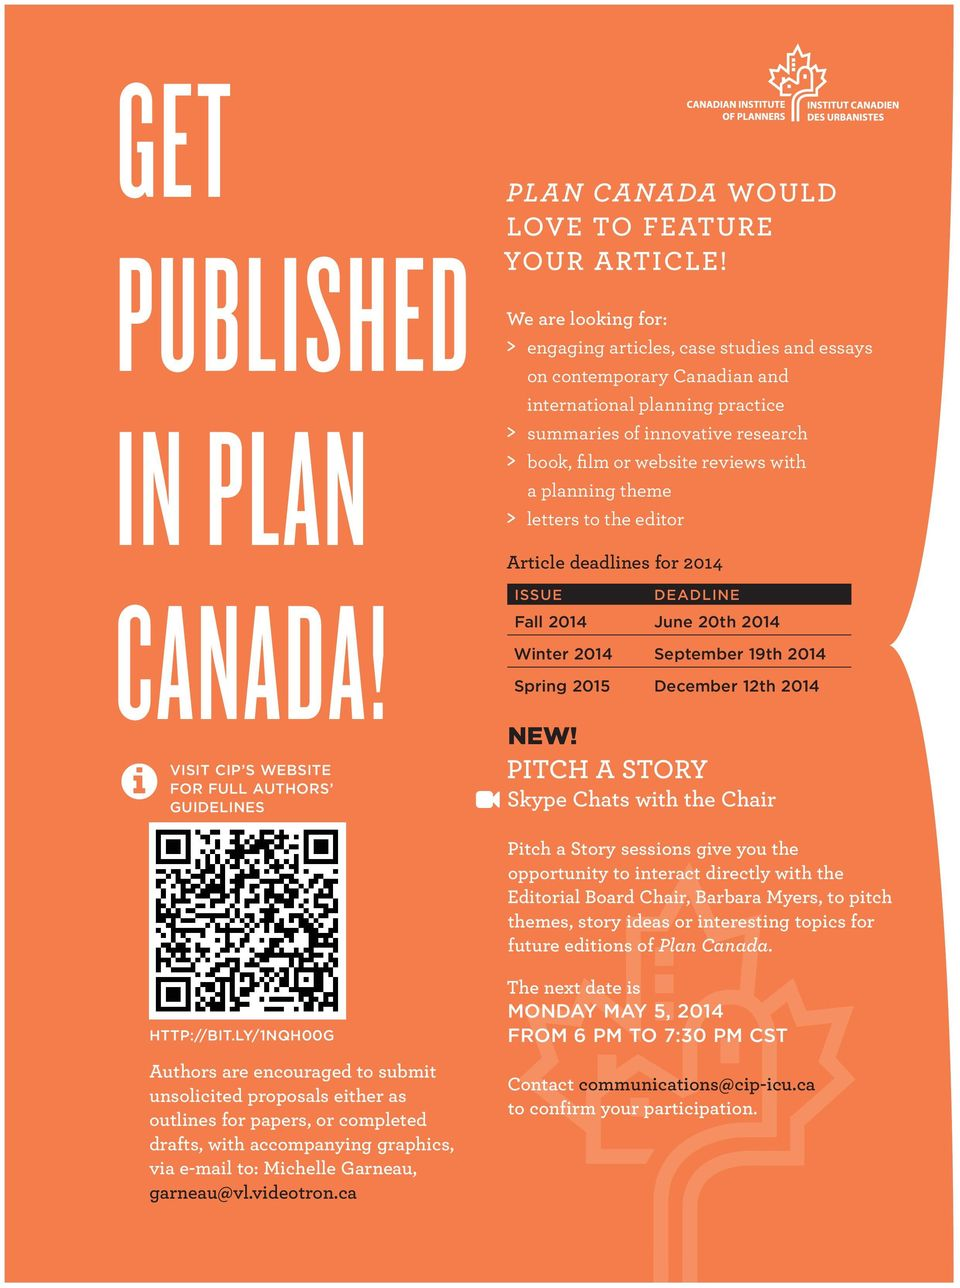 planning theme > letters to the editor article deadlines for 2014 ISSUE DEADLINE Fall 2014 June 20th 2014 Winter 2014 September 19th 2014 Spring 2015 December 12th 2014 NEW!